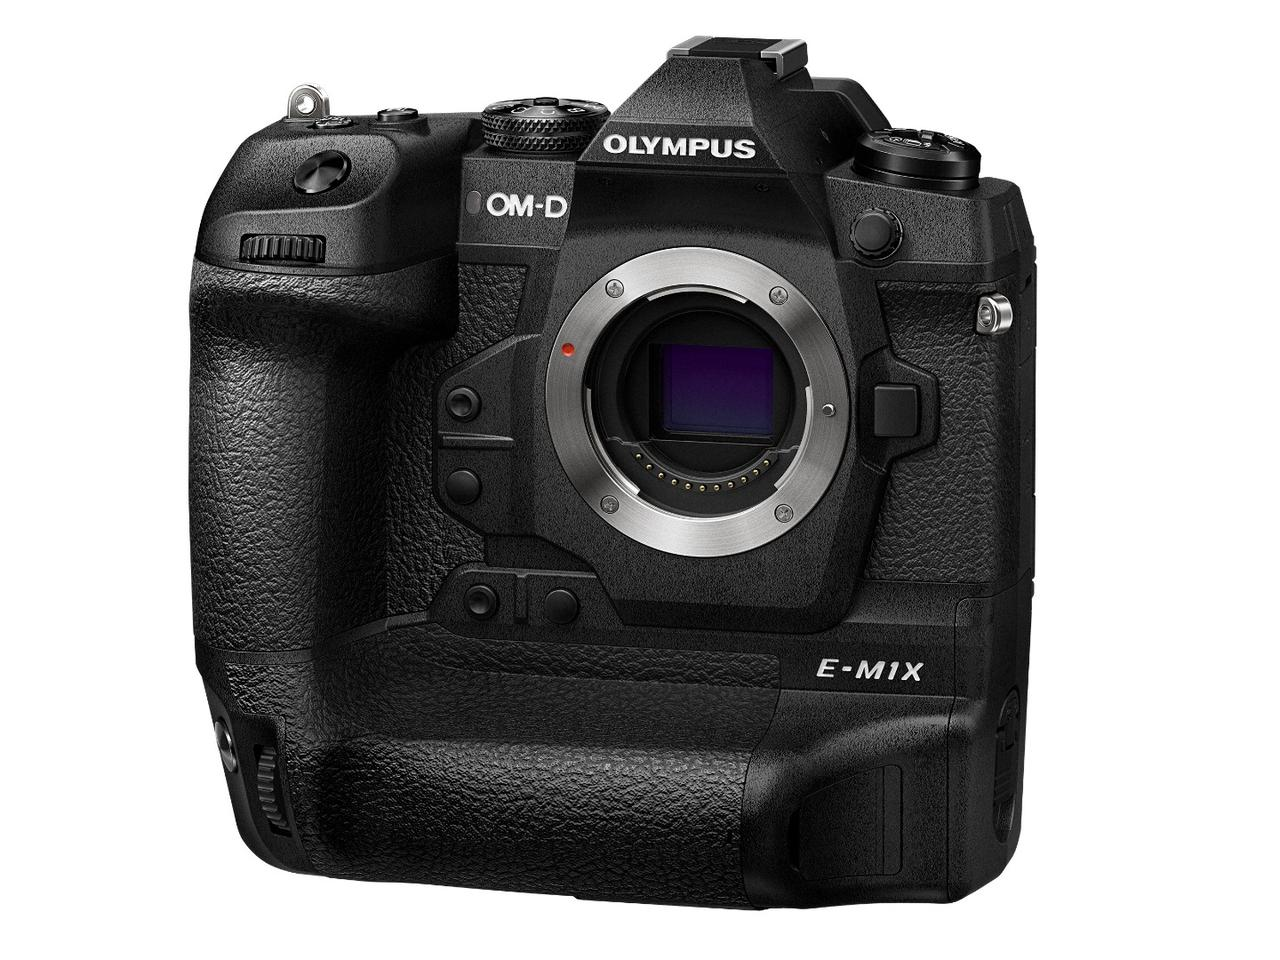 The OM-D E-M1X is built around a 20.4 megapixel Micro Four Thirds (17.4 x 13 mm) Live MOS image sensor